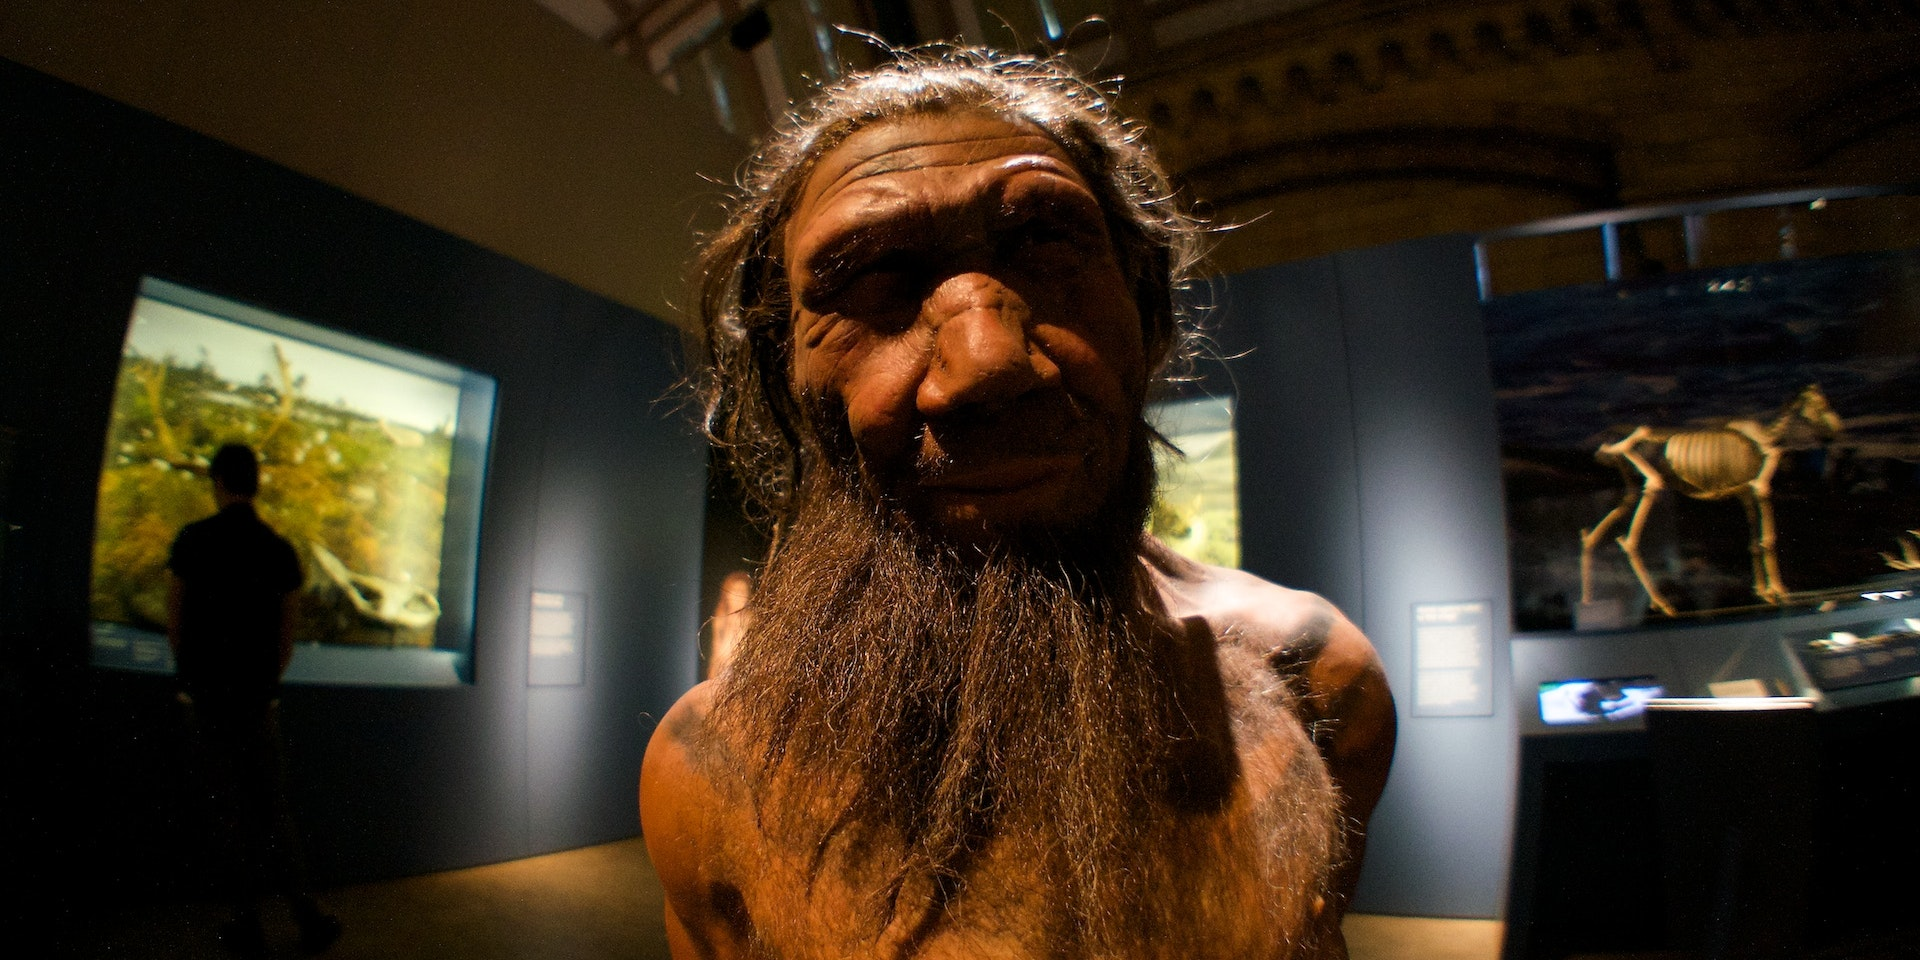 Did Inbreeding Kill the Neanderthals? Experts Say Skeletons Hold Clues